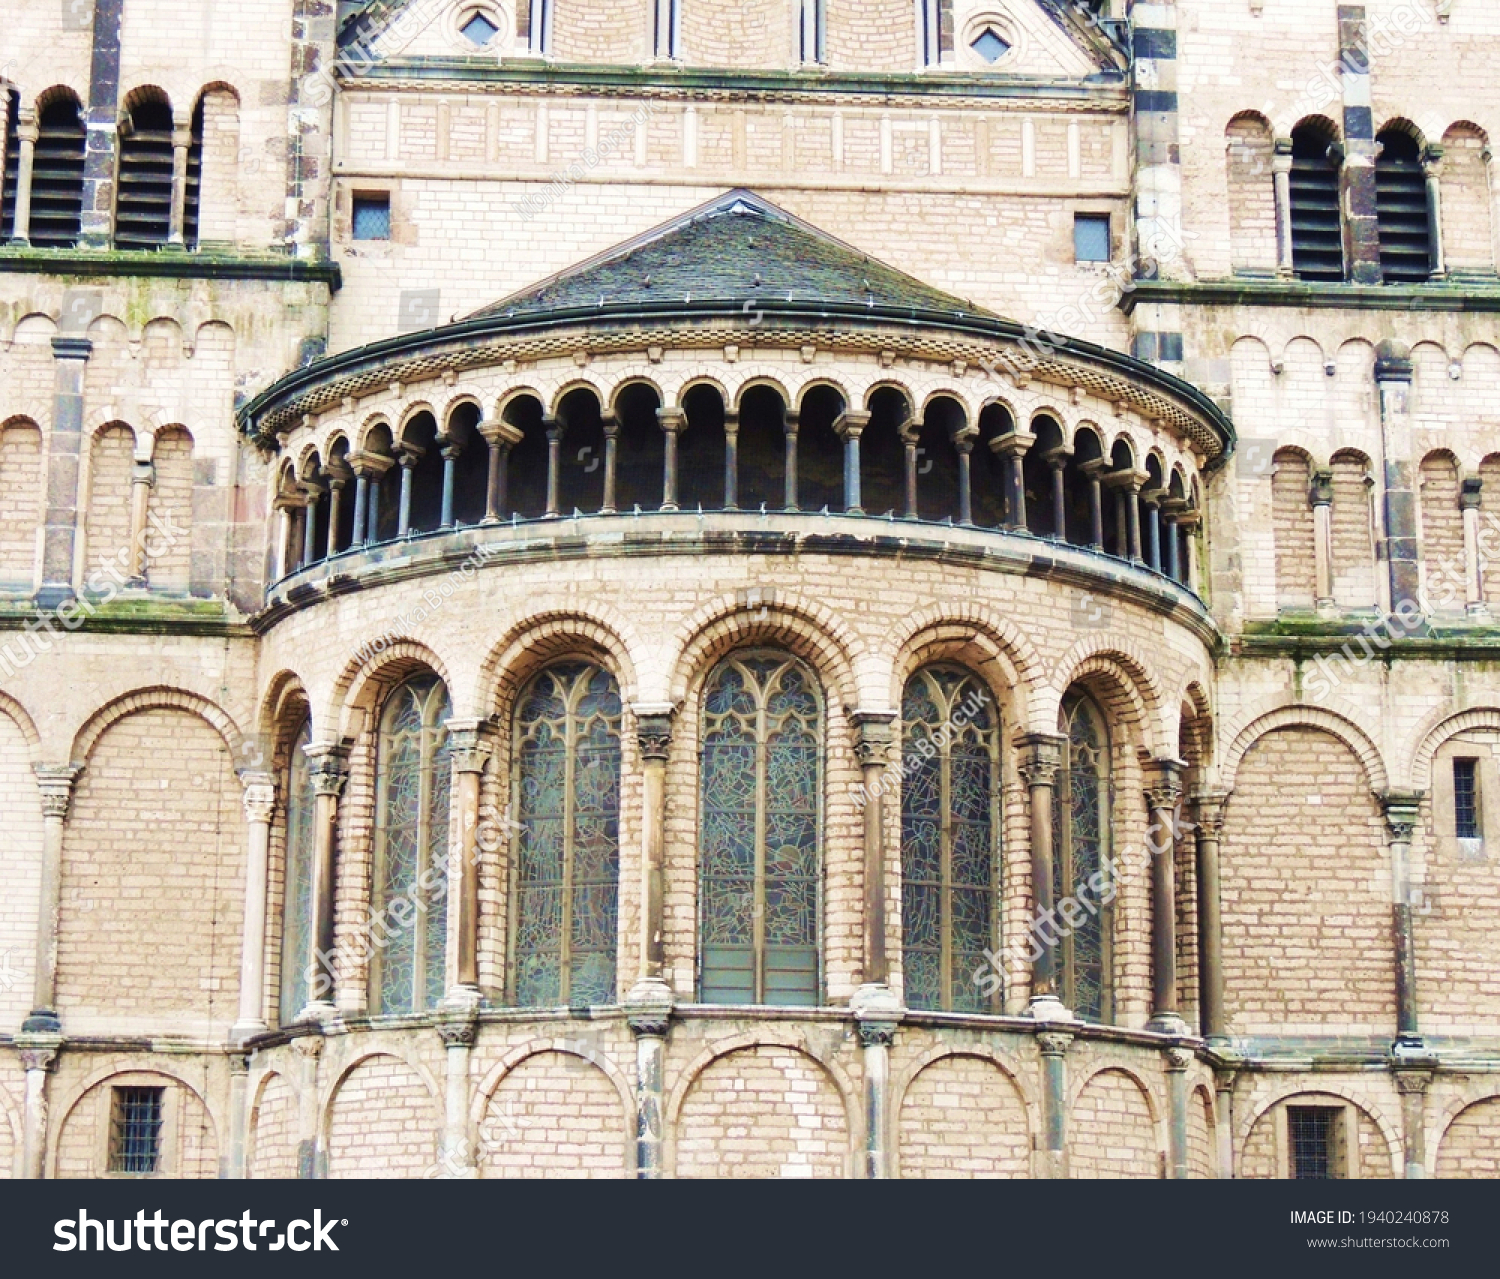 stock-photo-the-facade-of-the-minster-in